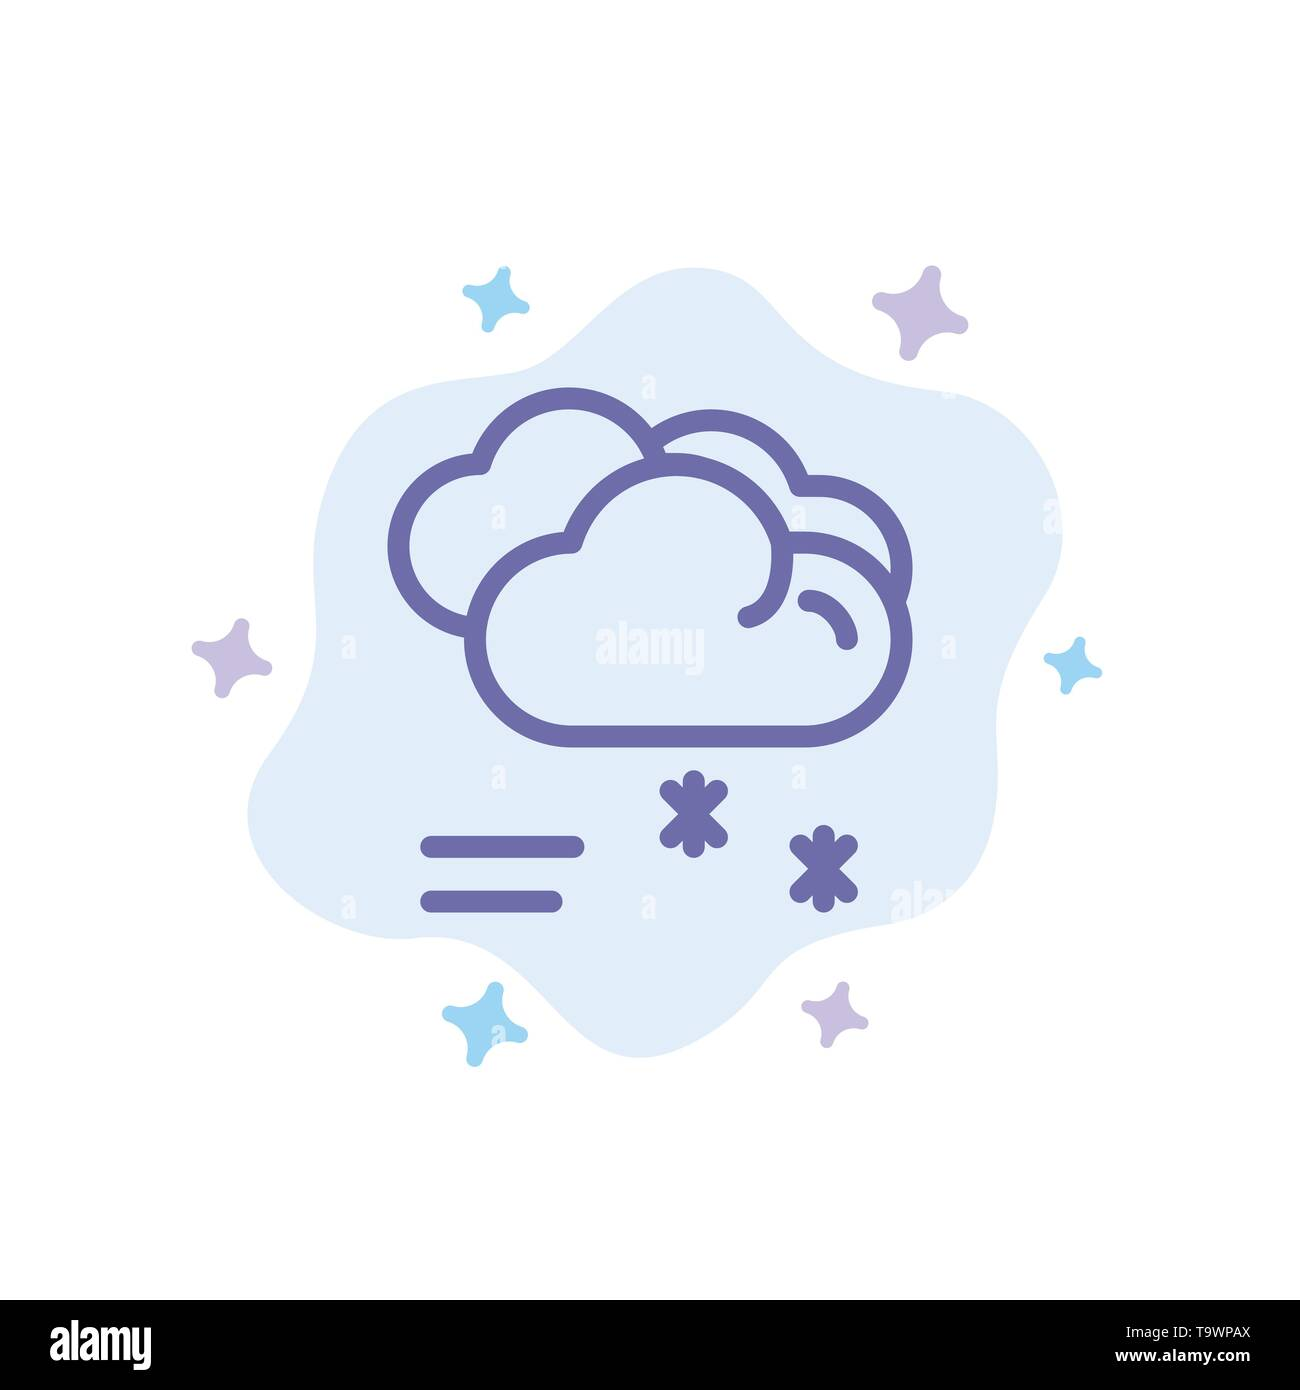 Cloud Raining, Forecast, Raining, Rainy Weather Blue Icon on Abstract Cloud Background - Stock Image